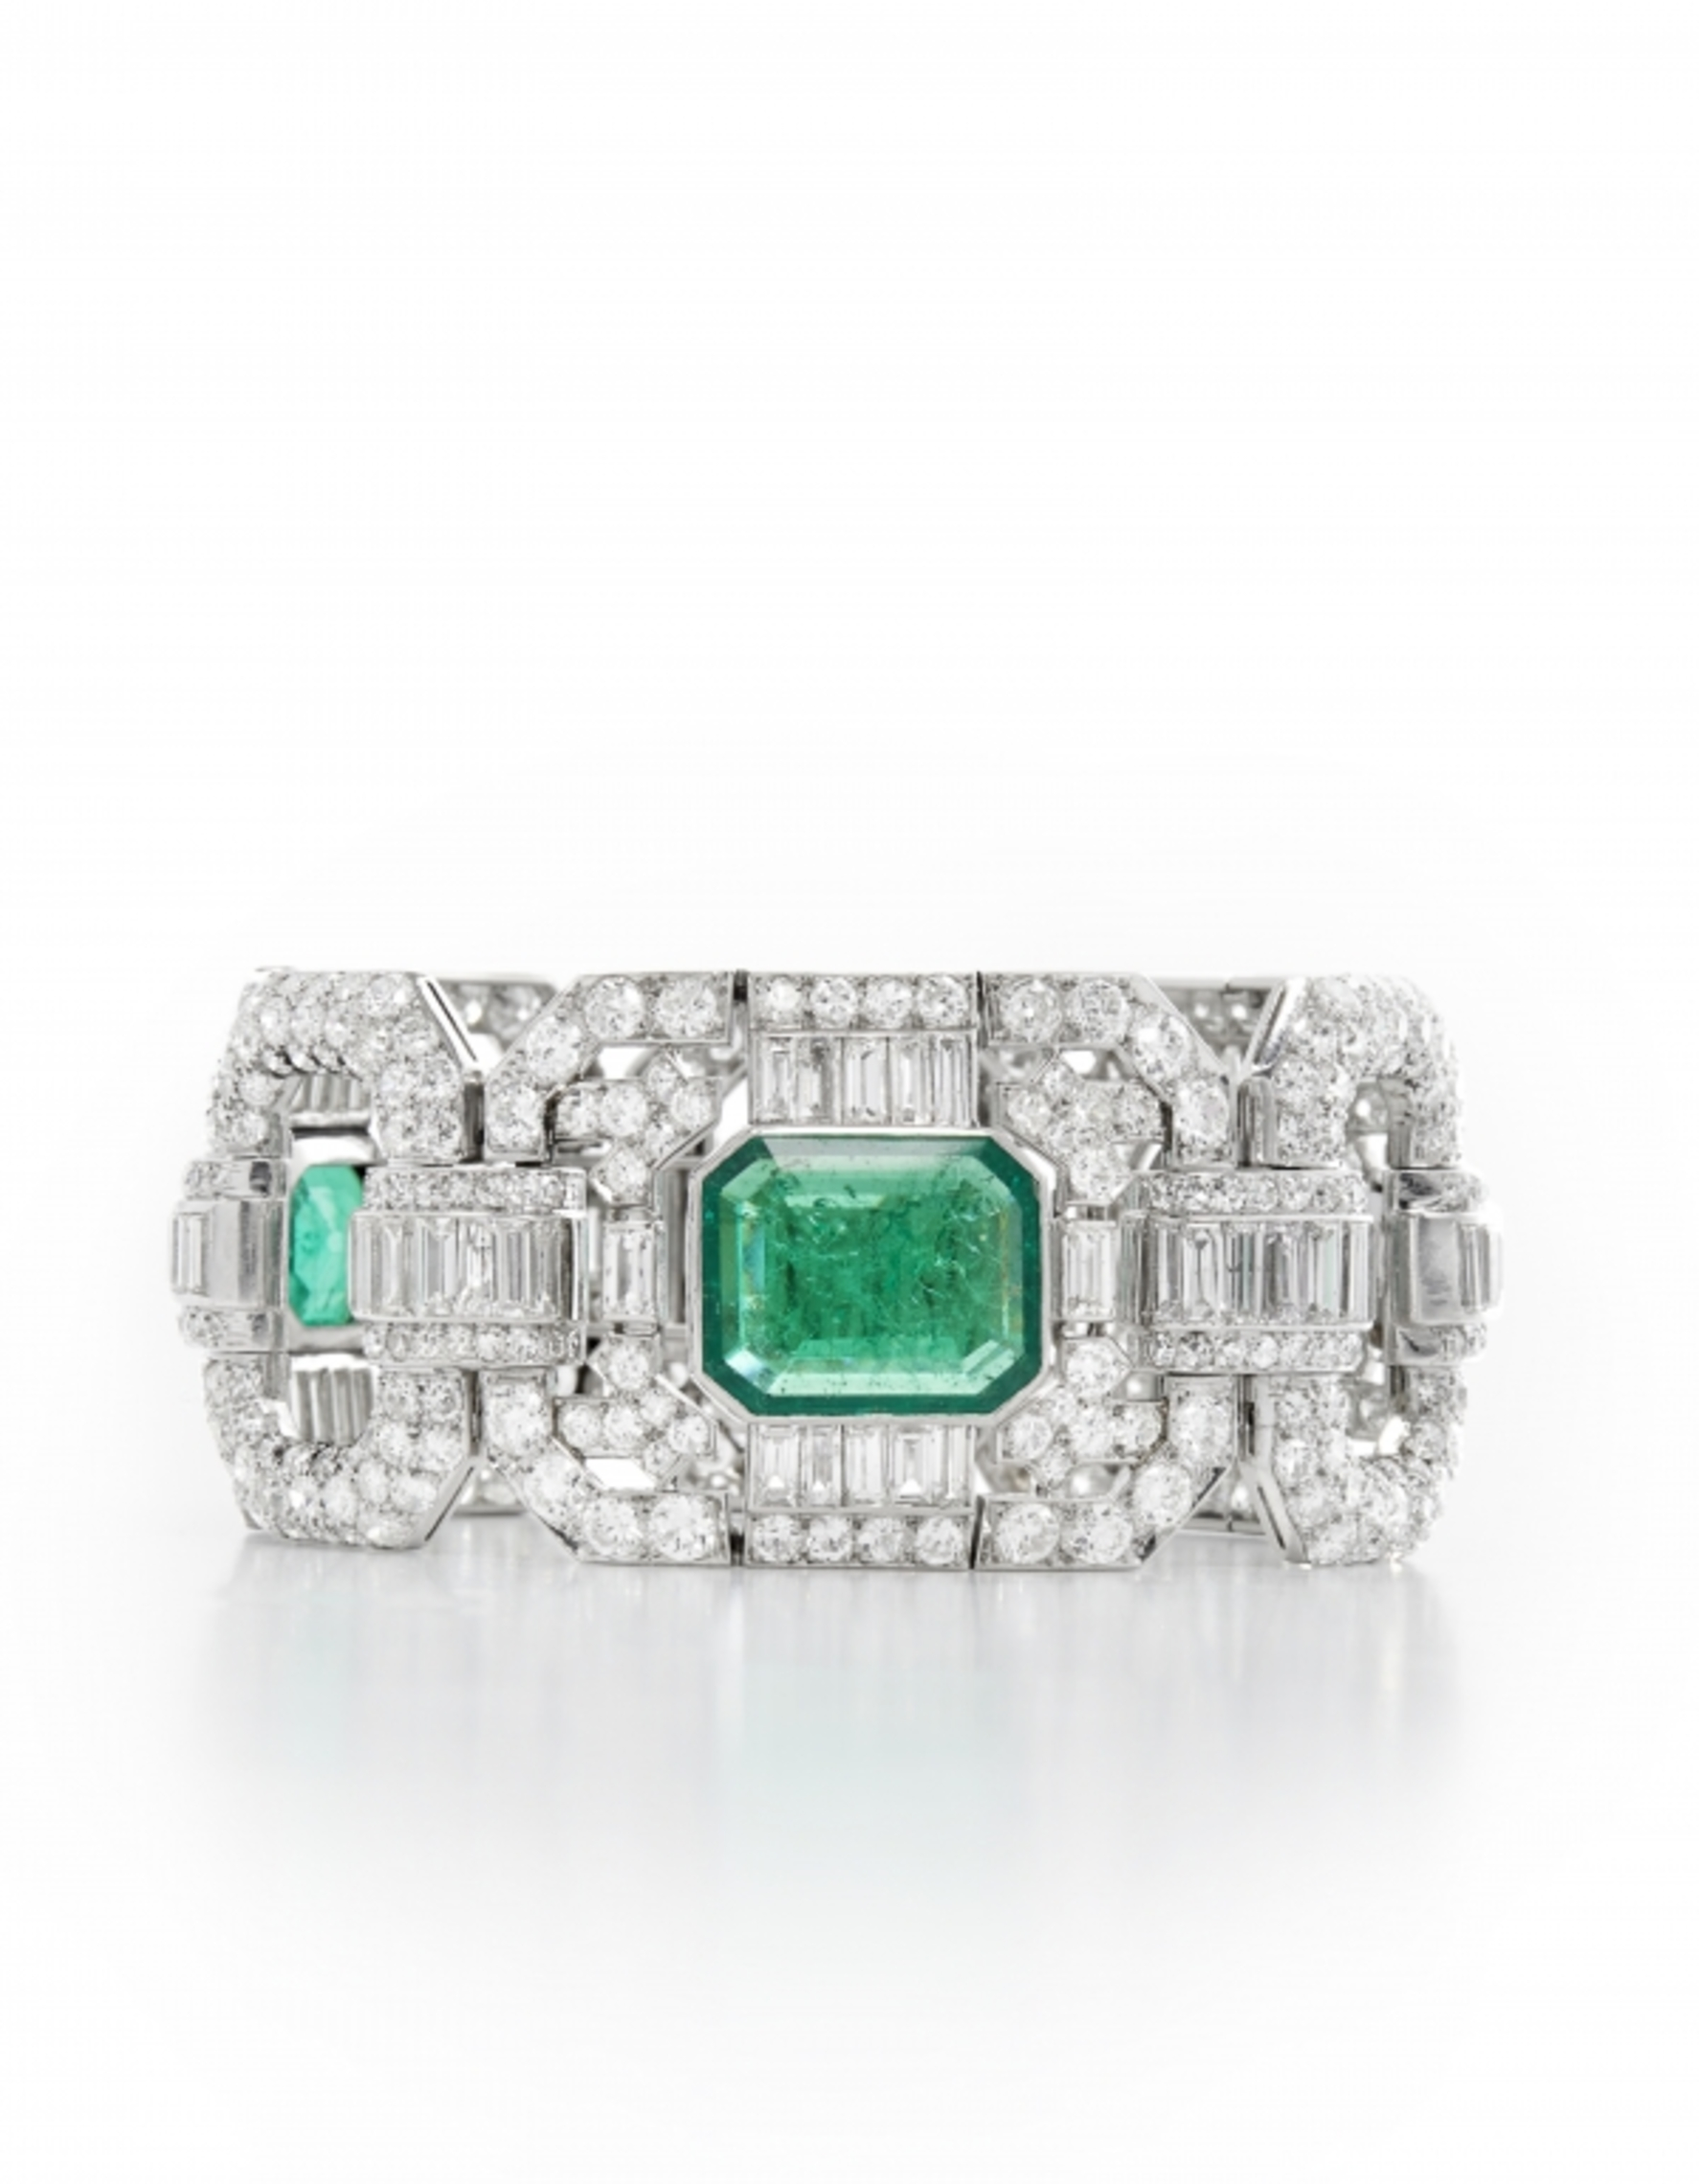 A Diamond and Emerald Bracelet, by Mauboussin